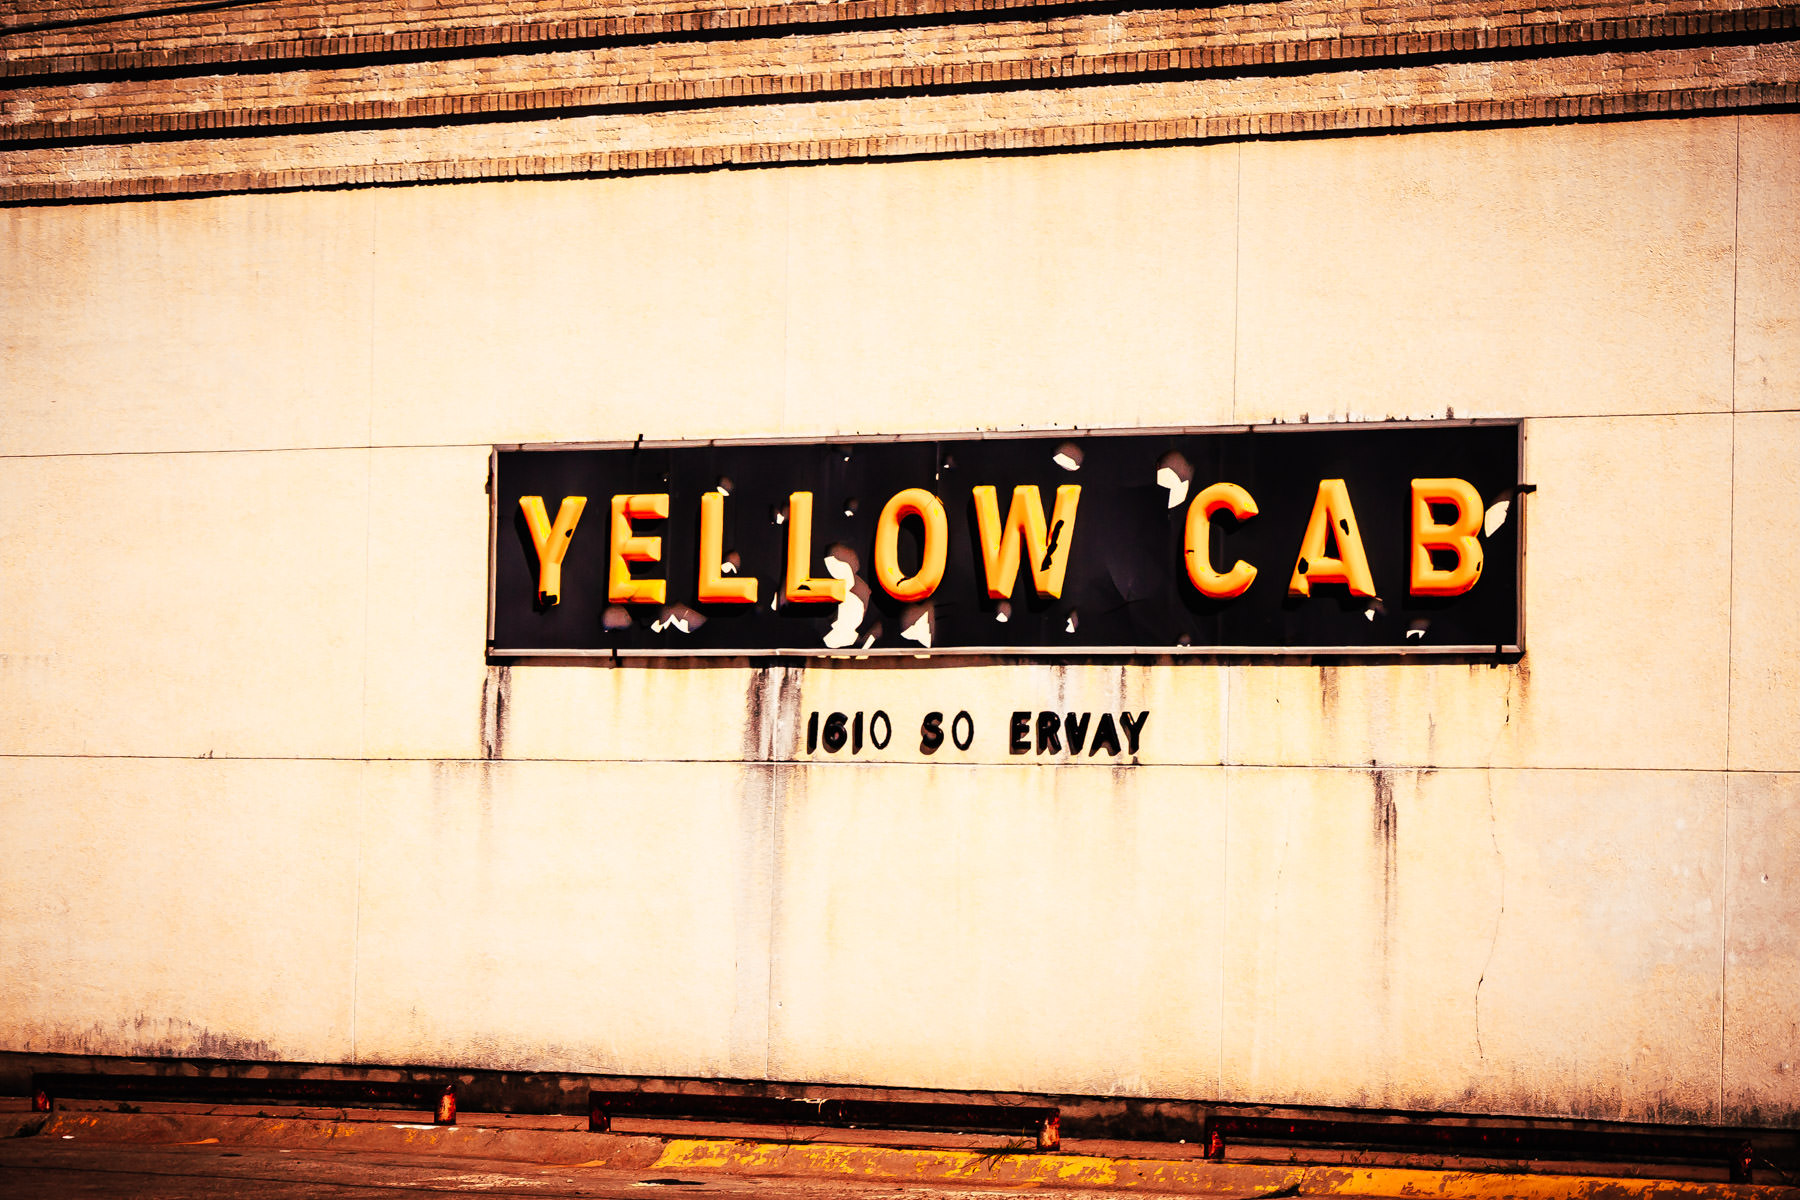 A decaying sign for the Yellow Cab company south of Downtown Dallas.